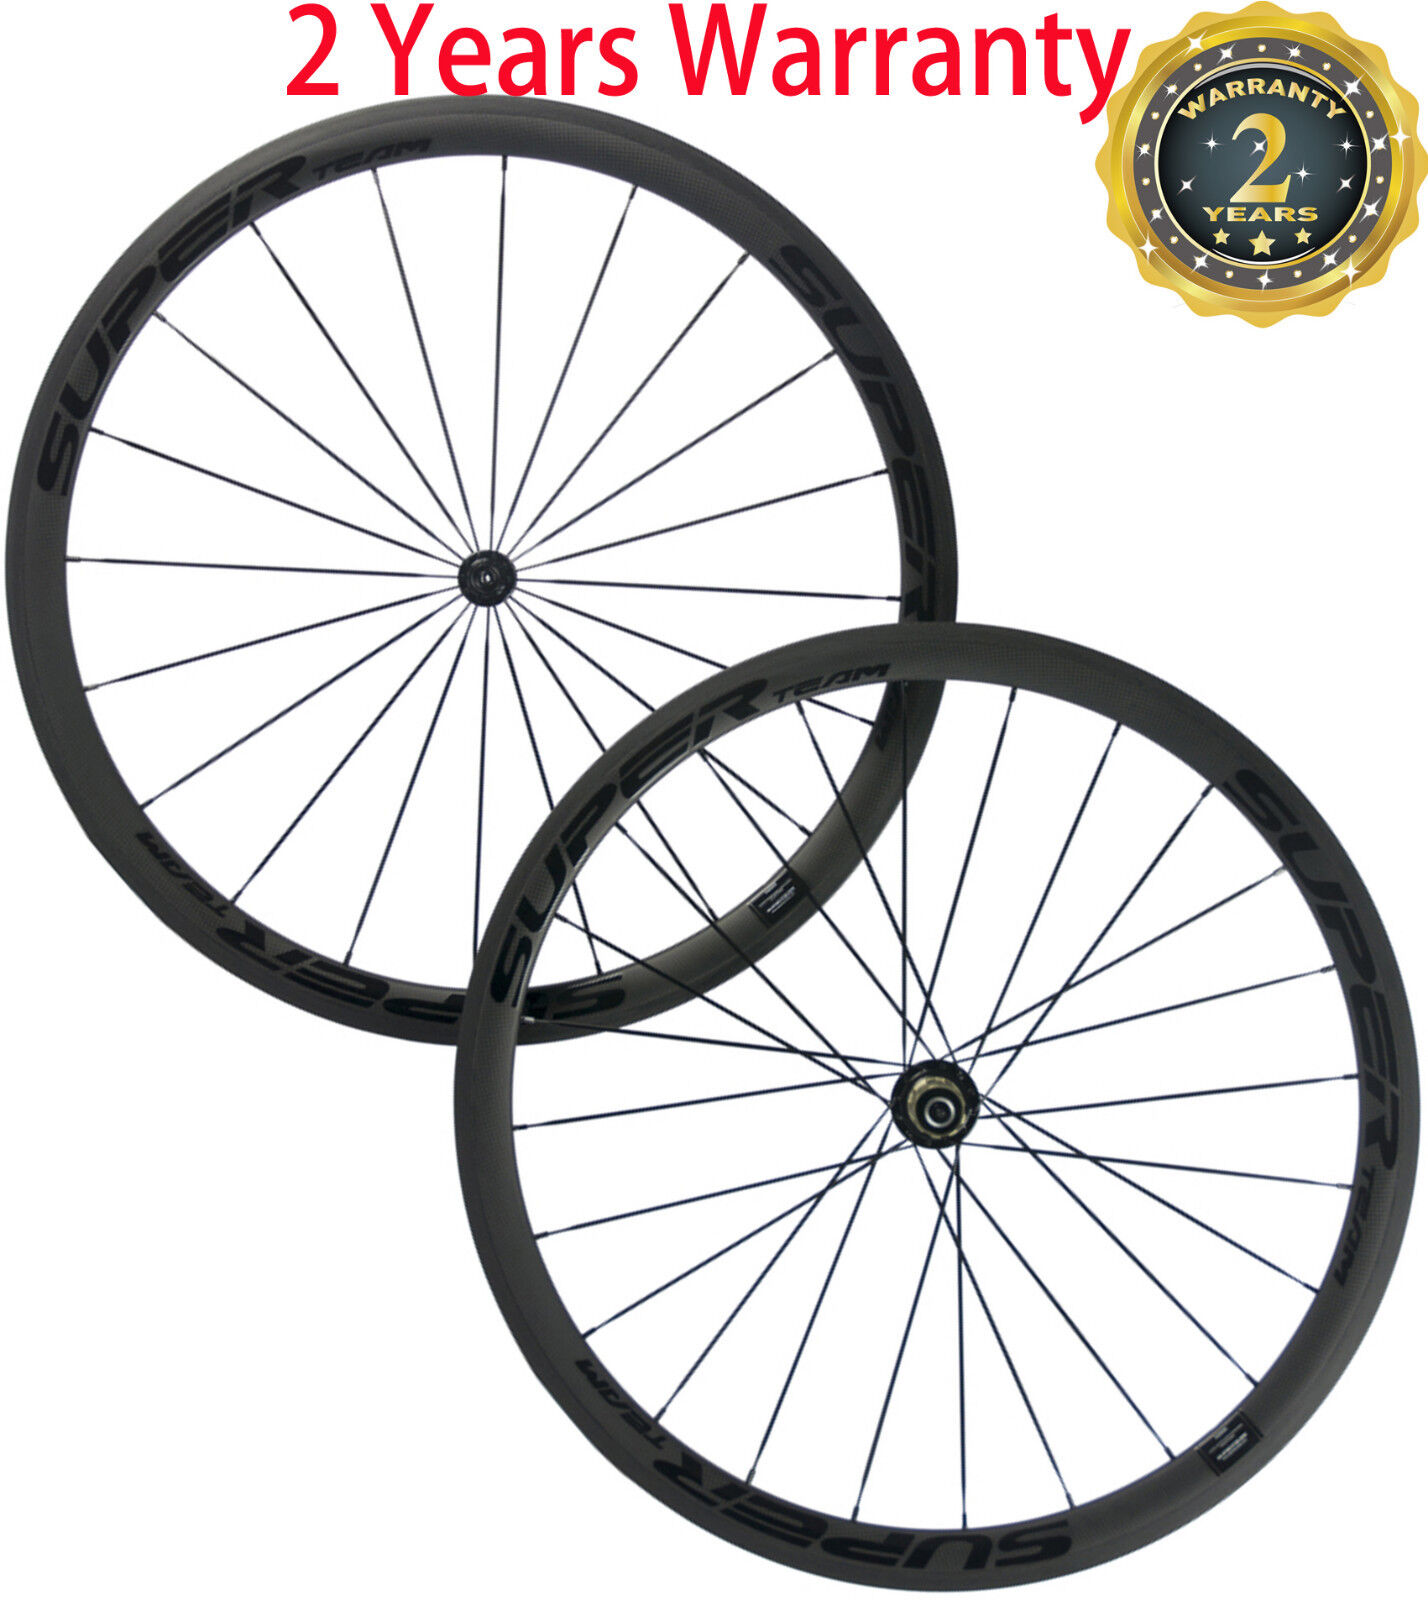 Superteam 38mm Clincher  Wheels 25mm U Shape Carbon Bicycle Wheelset Front+Rear  clients first reputation first